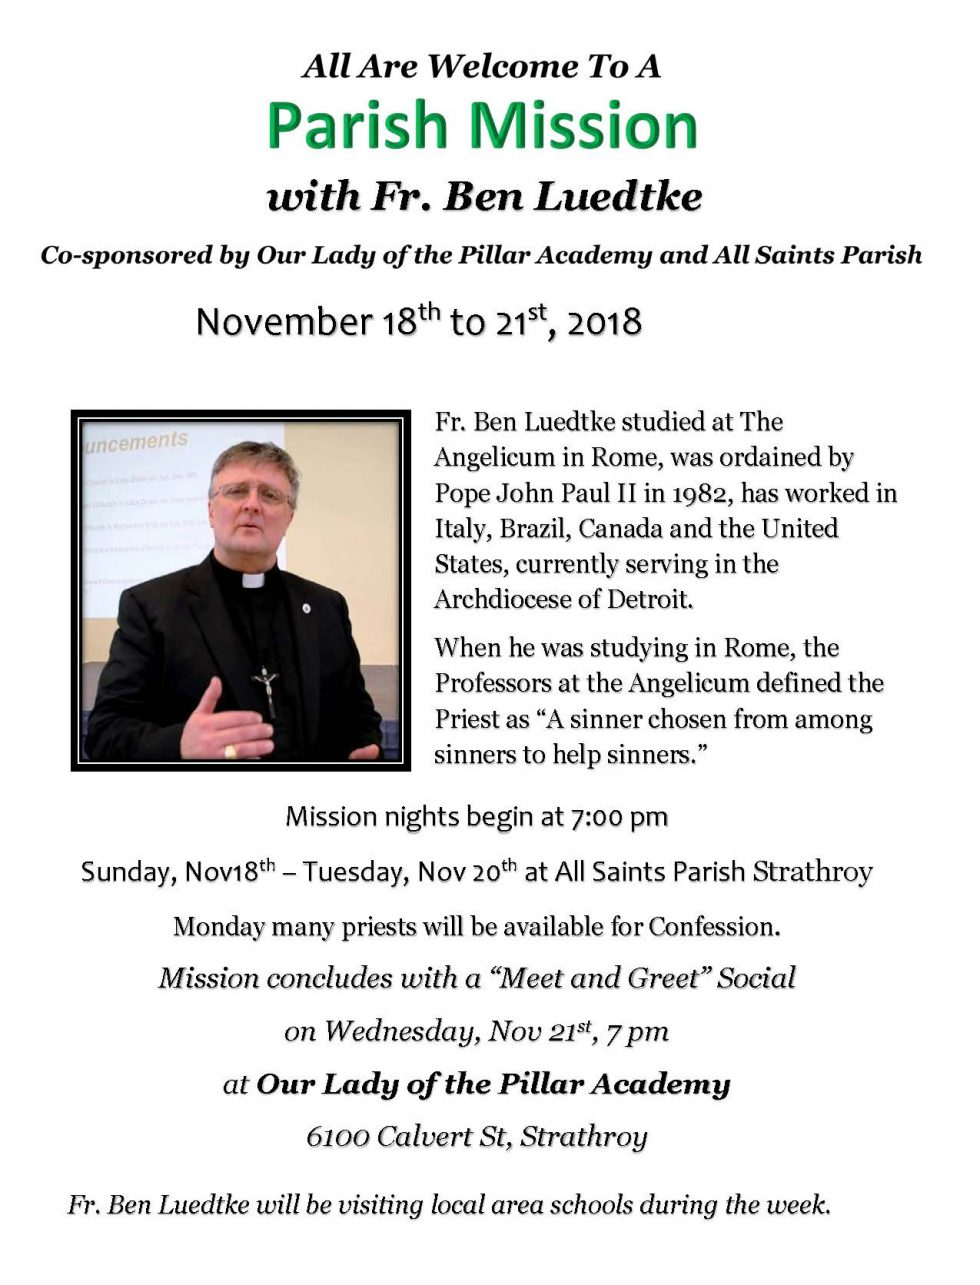 A Mission with Fr. Ben Luedtke